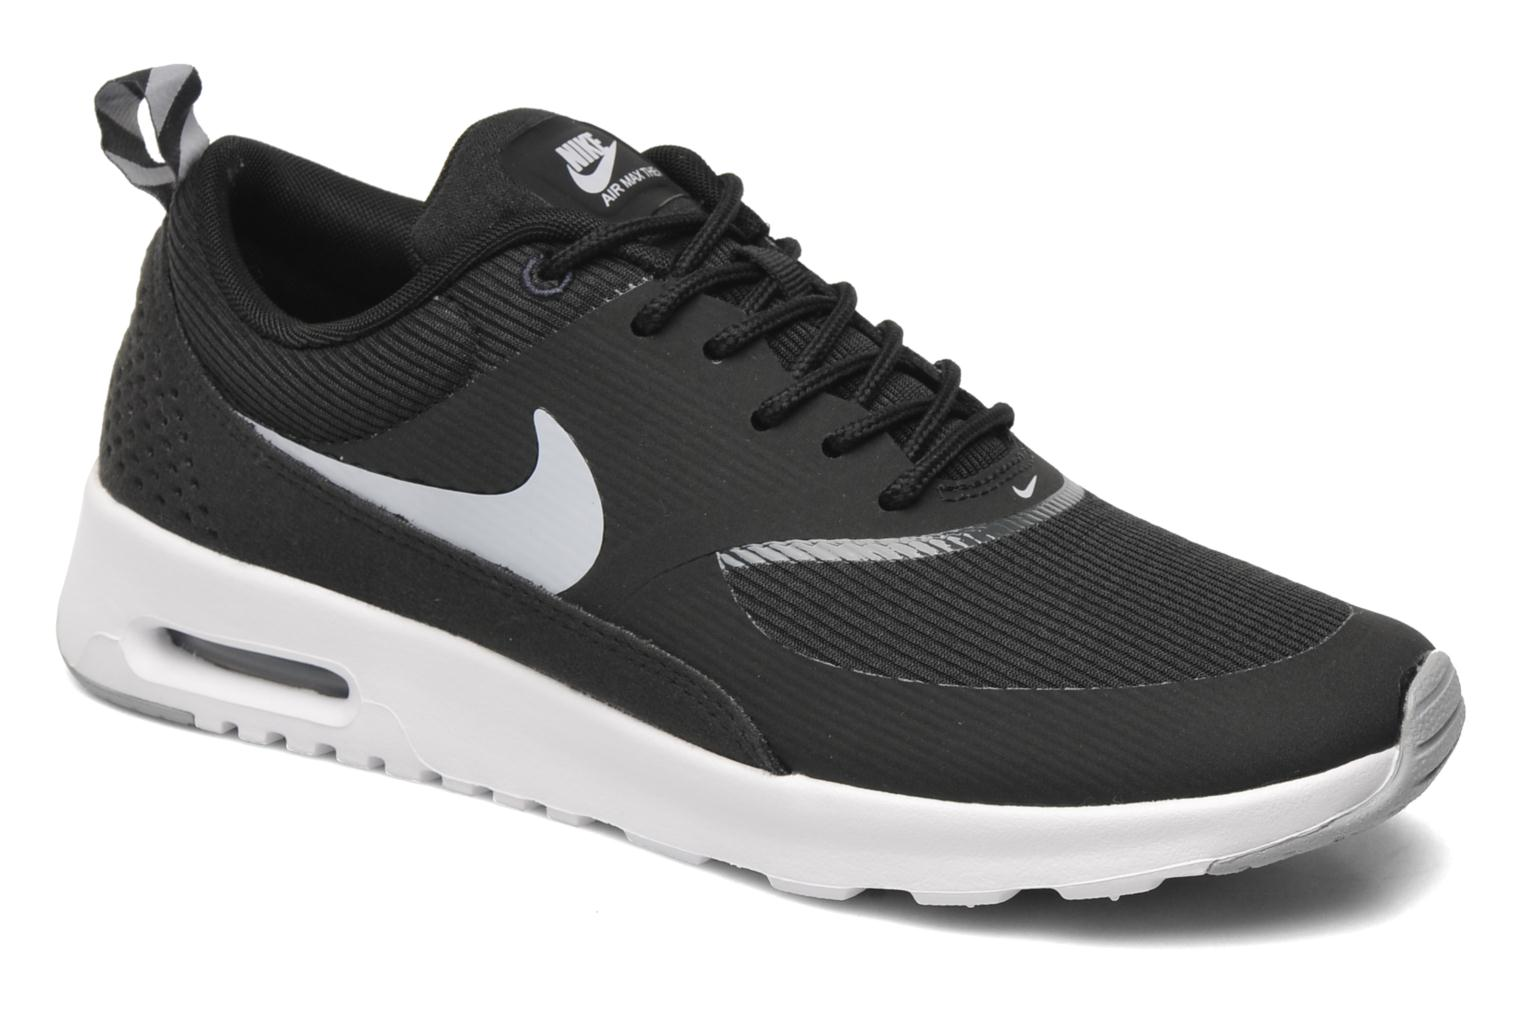 nike wmns nike air max thea trainers in black at sarenza. Black Bedroom Furniture Sets. Home Design Ideas